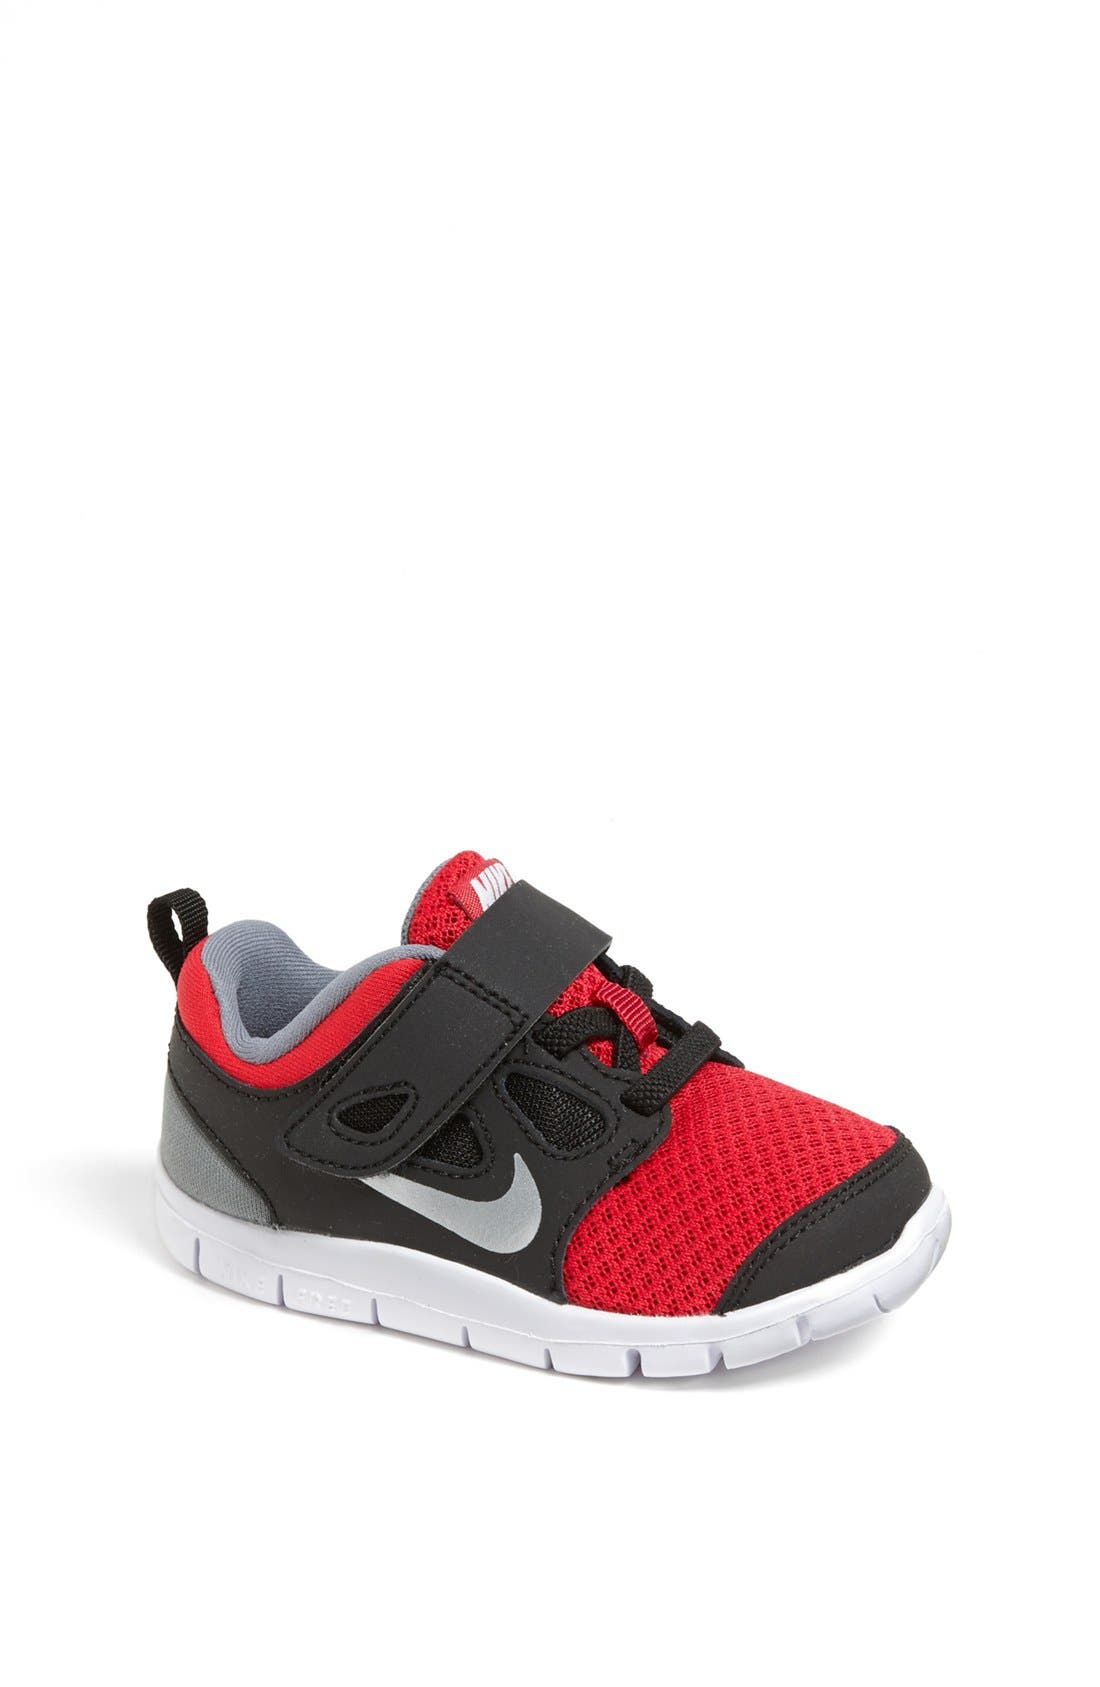 Alternate Image 1 Selected - Nike 'Free Run 5.0' Sneaker (Baby, Walker & Toddler)